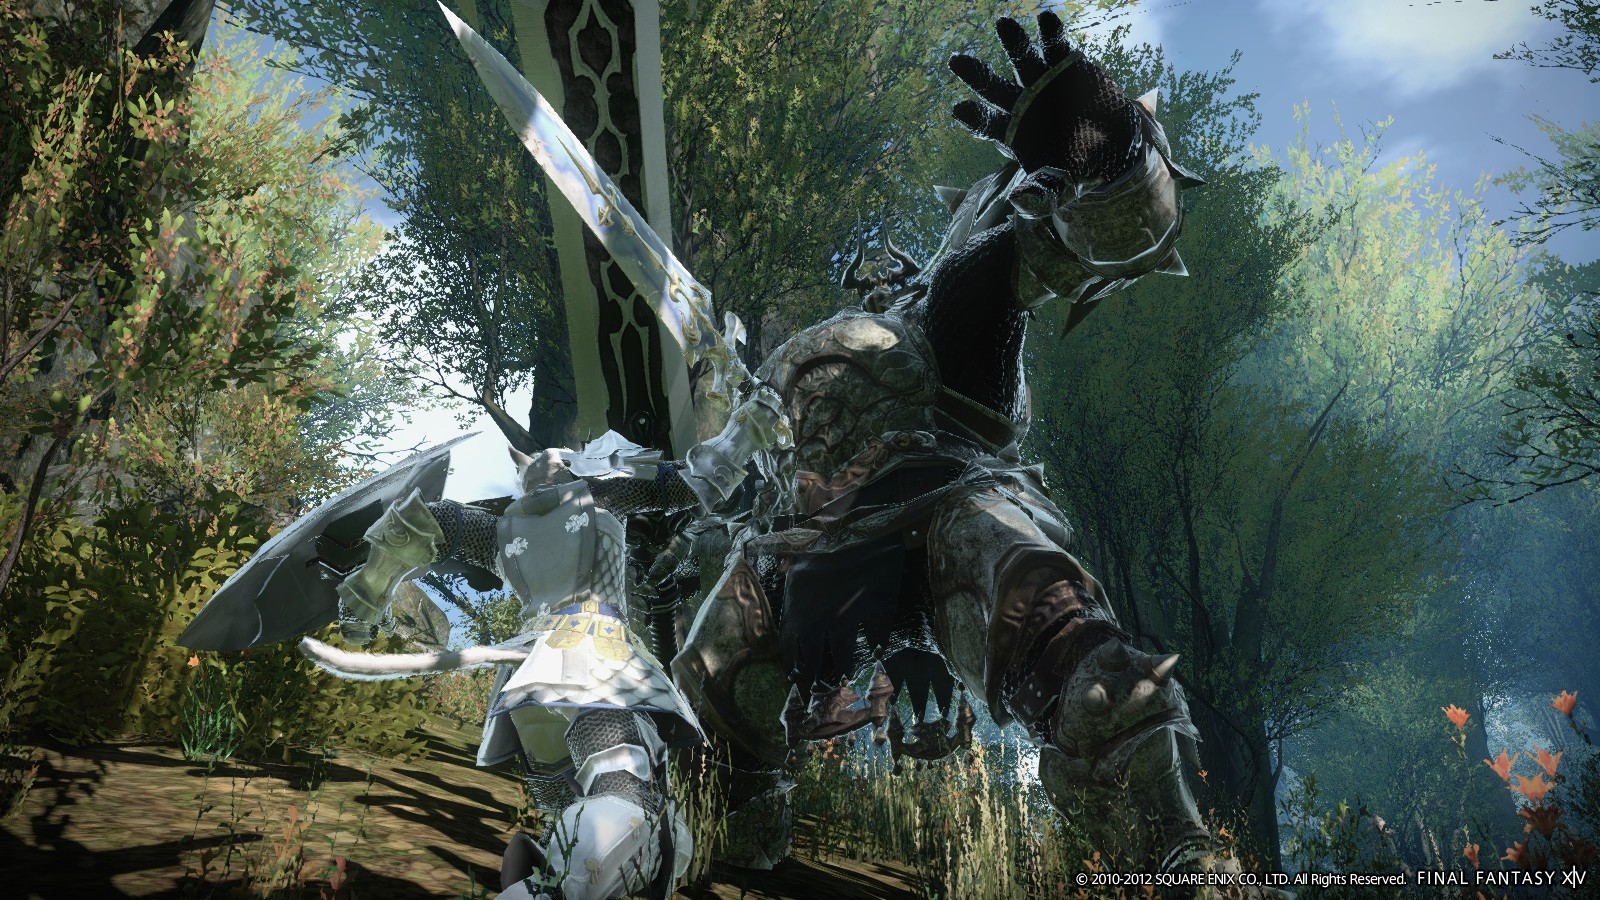 FINAL FANTASY XIV: A Realm Reborn (online only) (PS4)